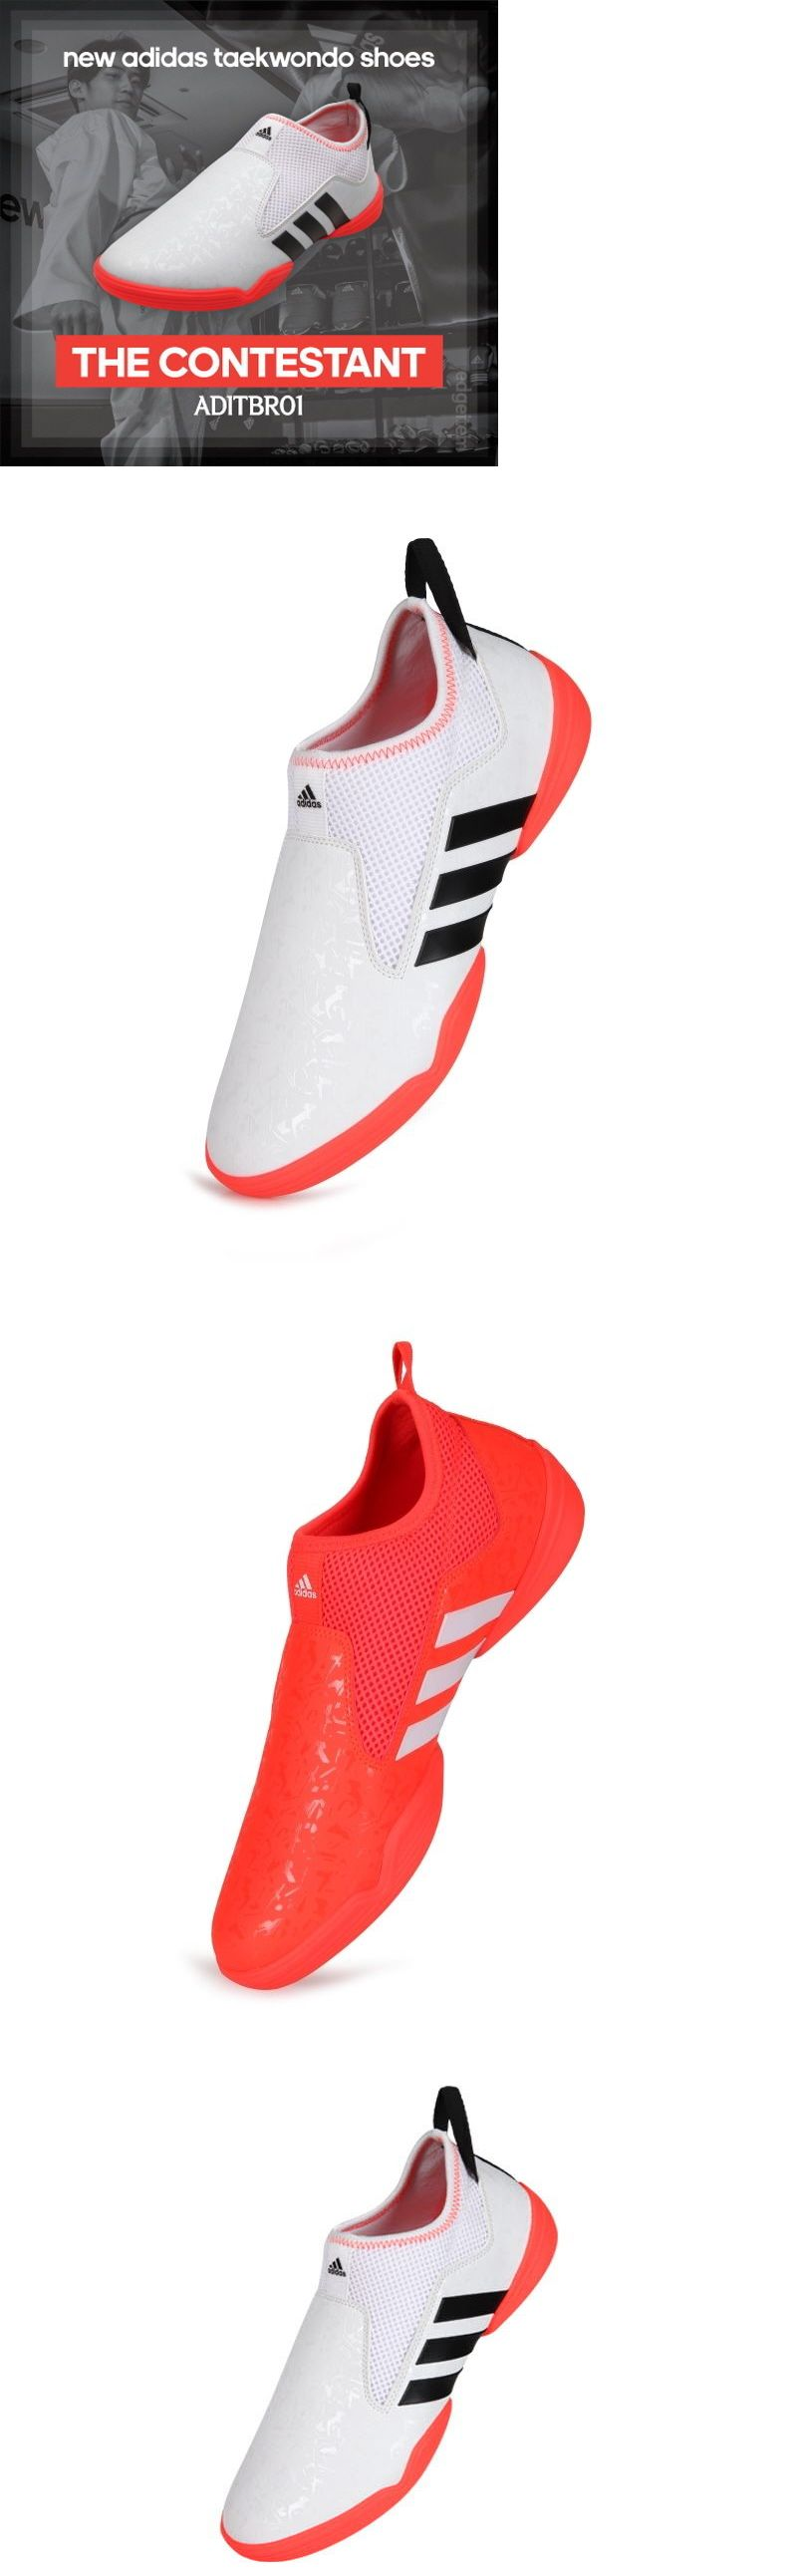 4941f62222b Clothing Shoes and Accessories 73980  Adidas The Contestant Taekwondo Shoes  White Orange Aditbr01 Tkd Combat Sports -  BUY IT NOW ONLY   113.4 on  eBay  ...